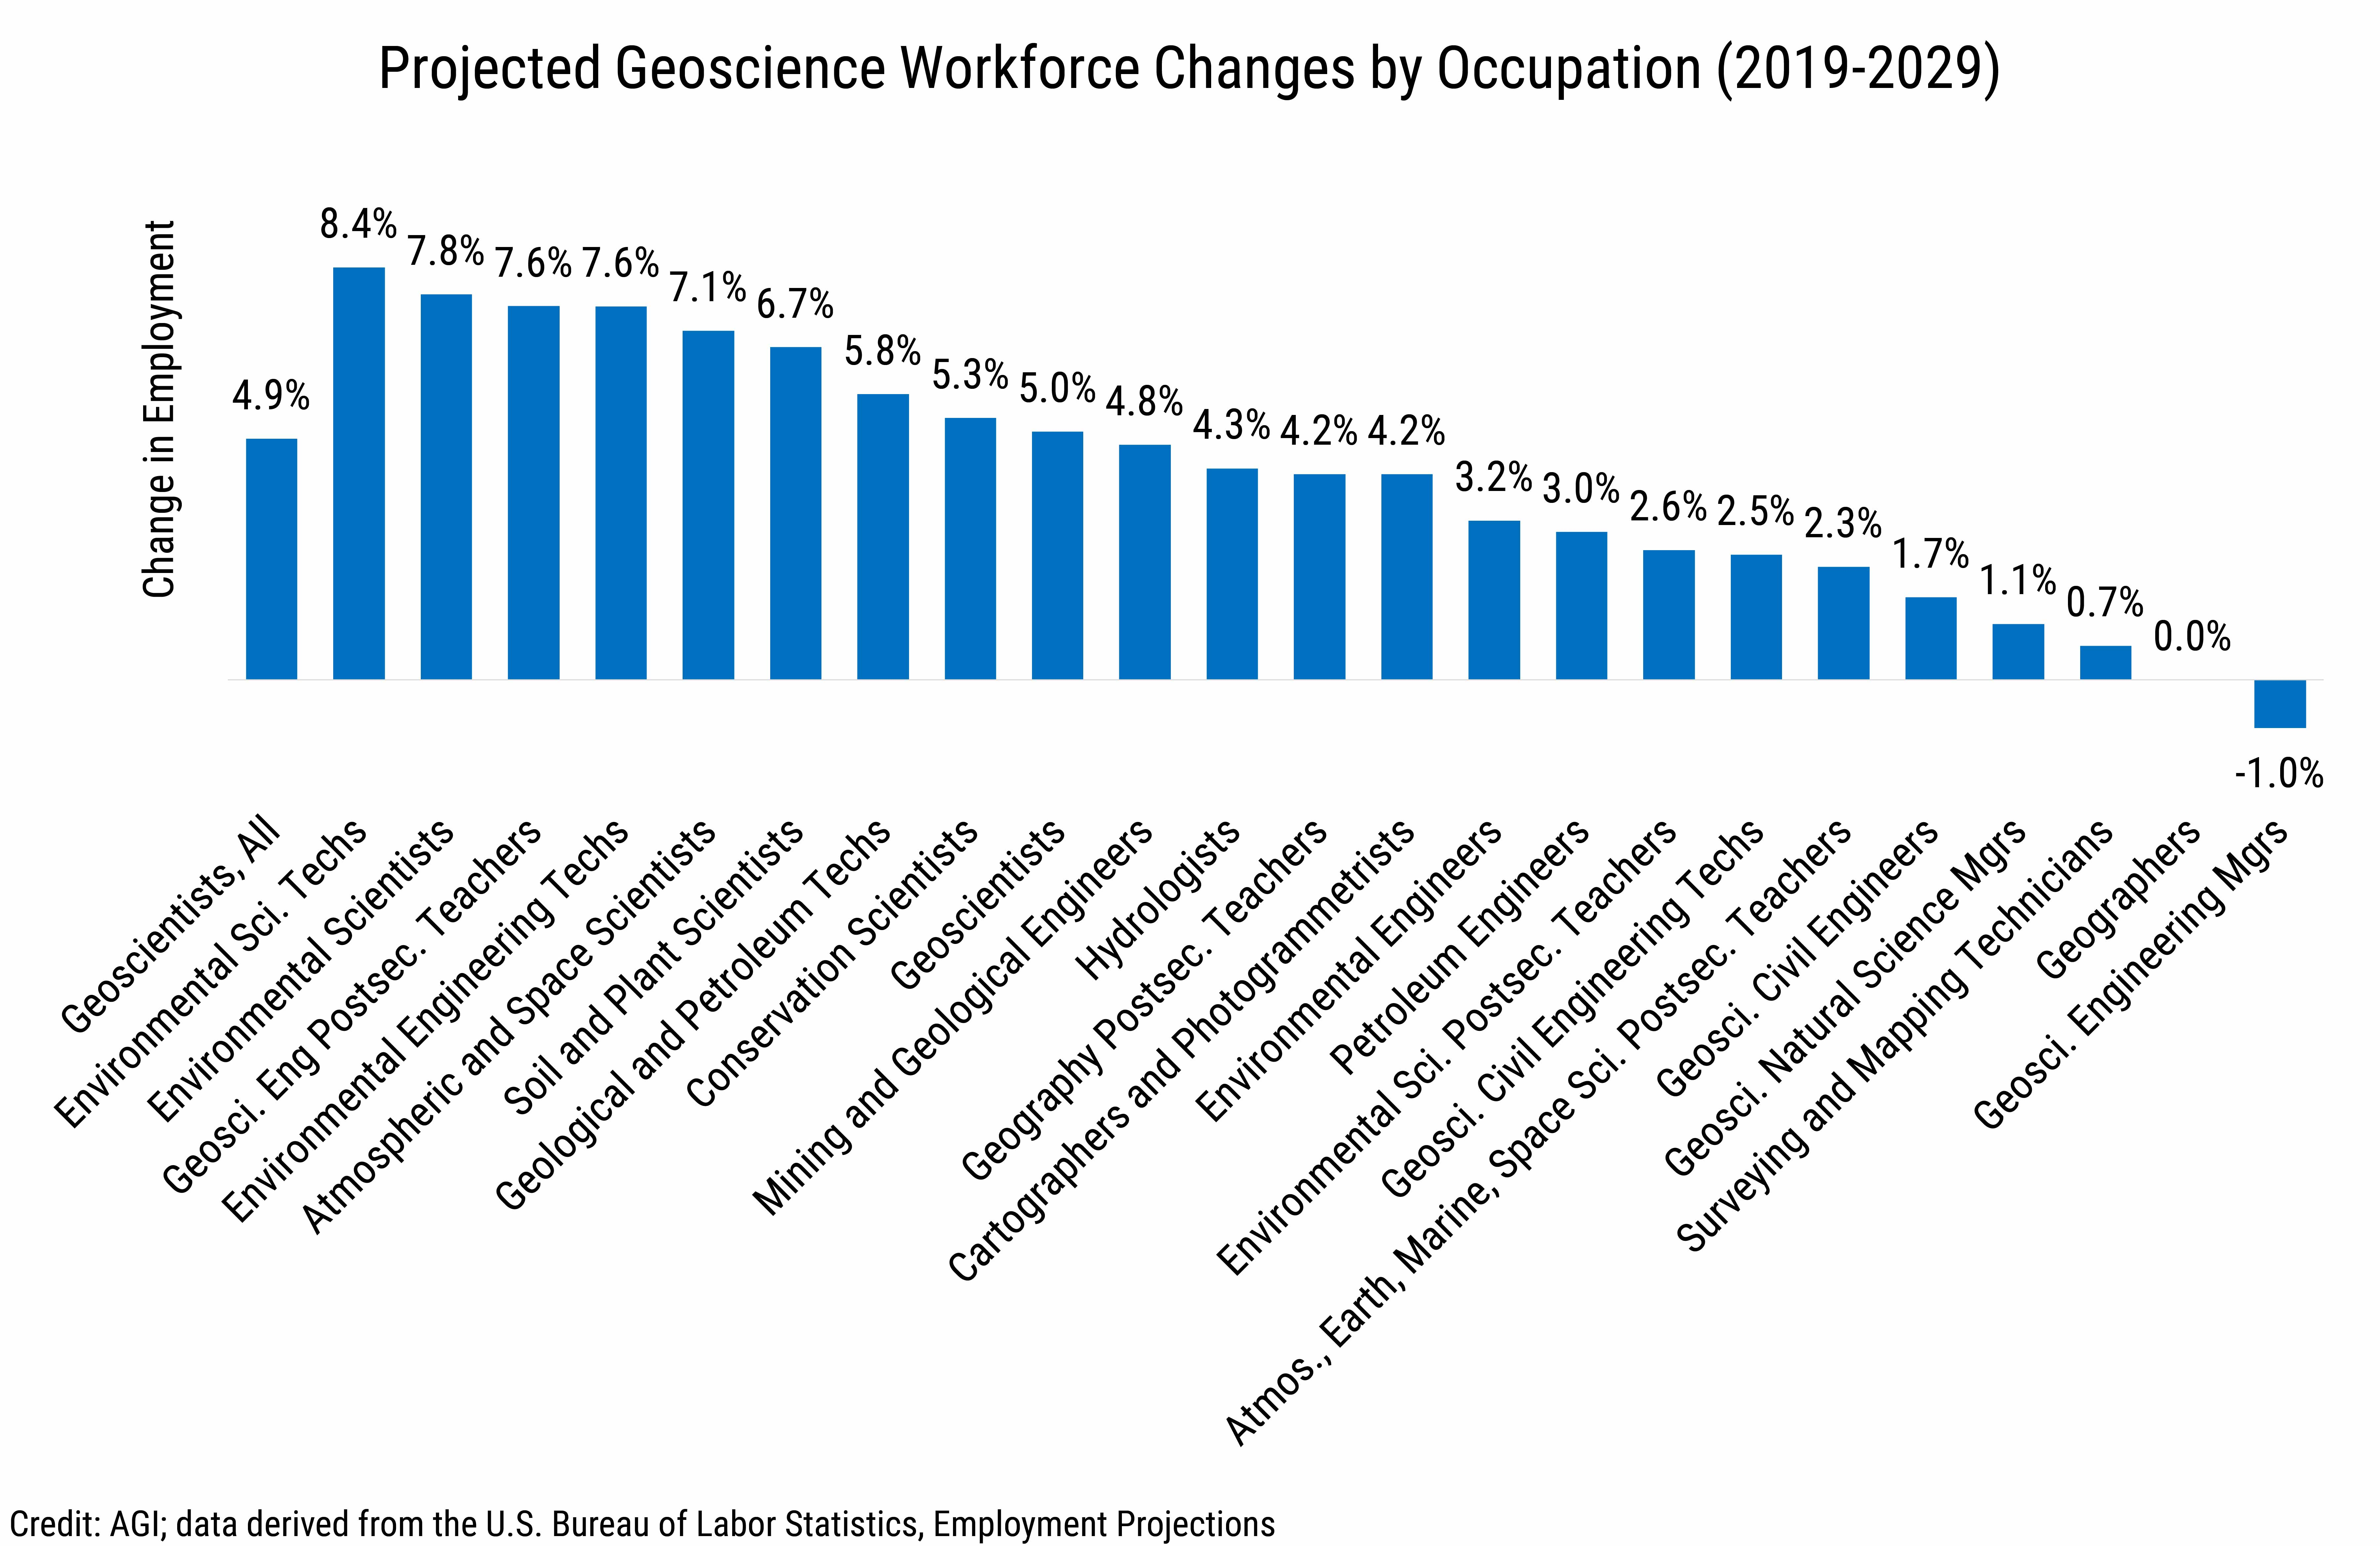 DB2020-025 chart 01: Projected Geoscience Workforce Changes by Occupation (2019-2029) (Credit: AGI; data derived from the U.S. Bureau of Labor Statistics, Employment Projections)